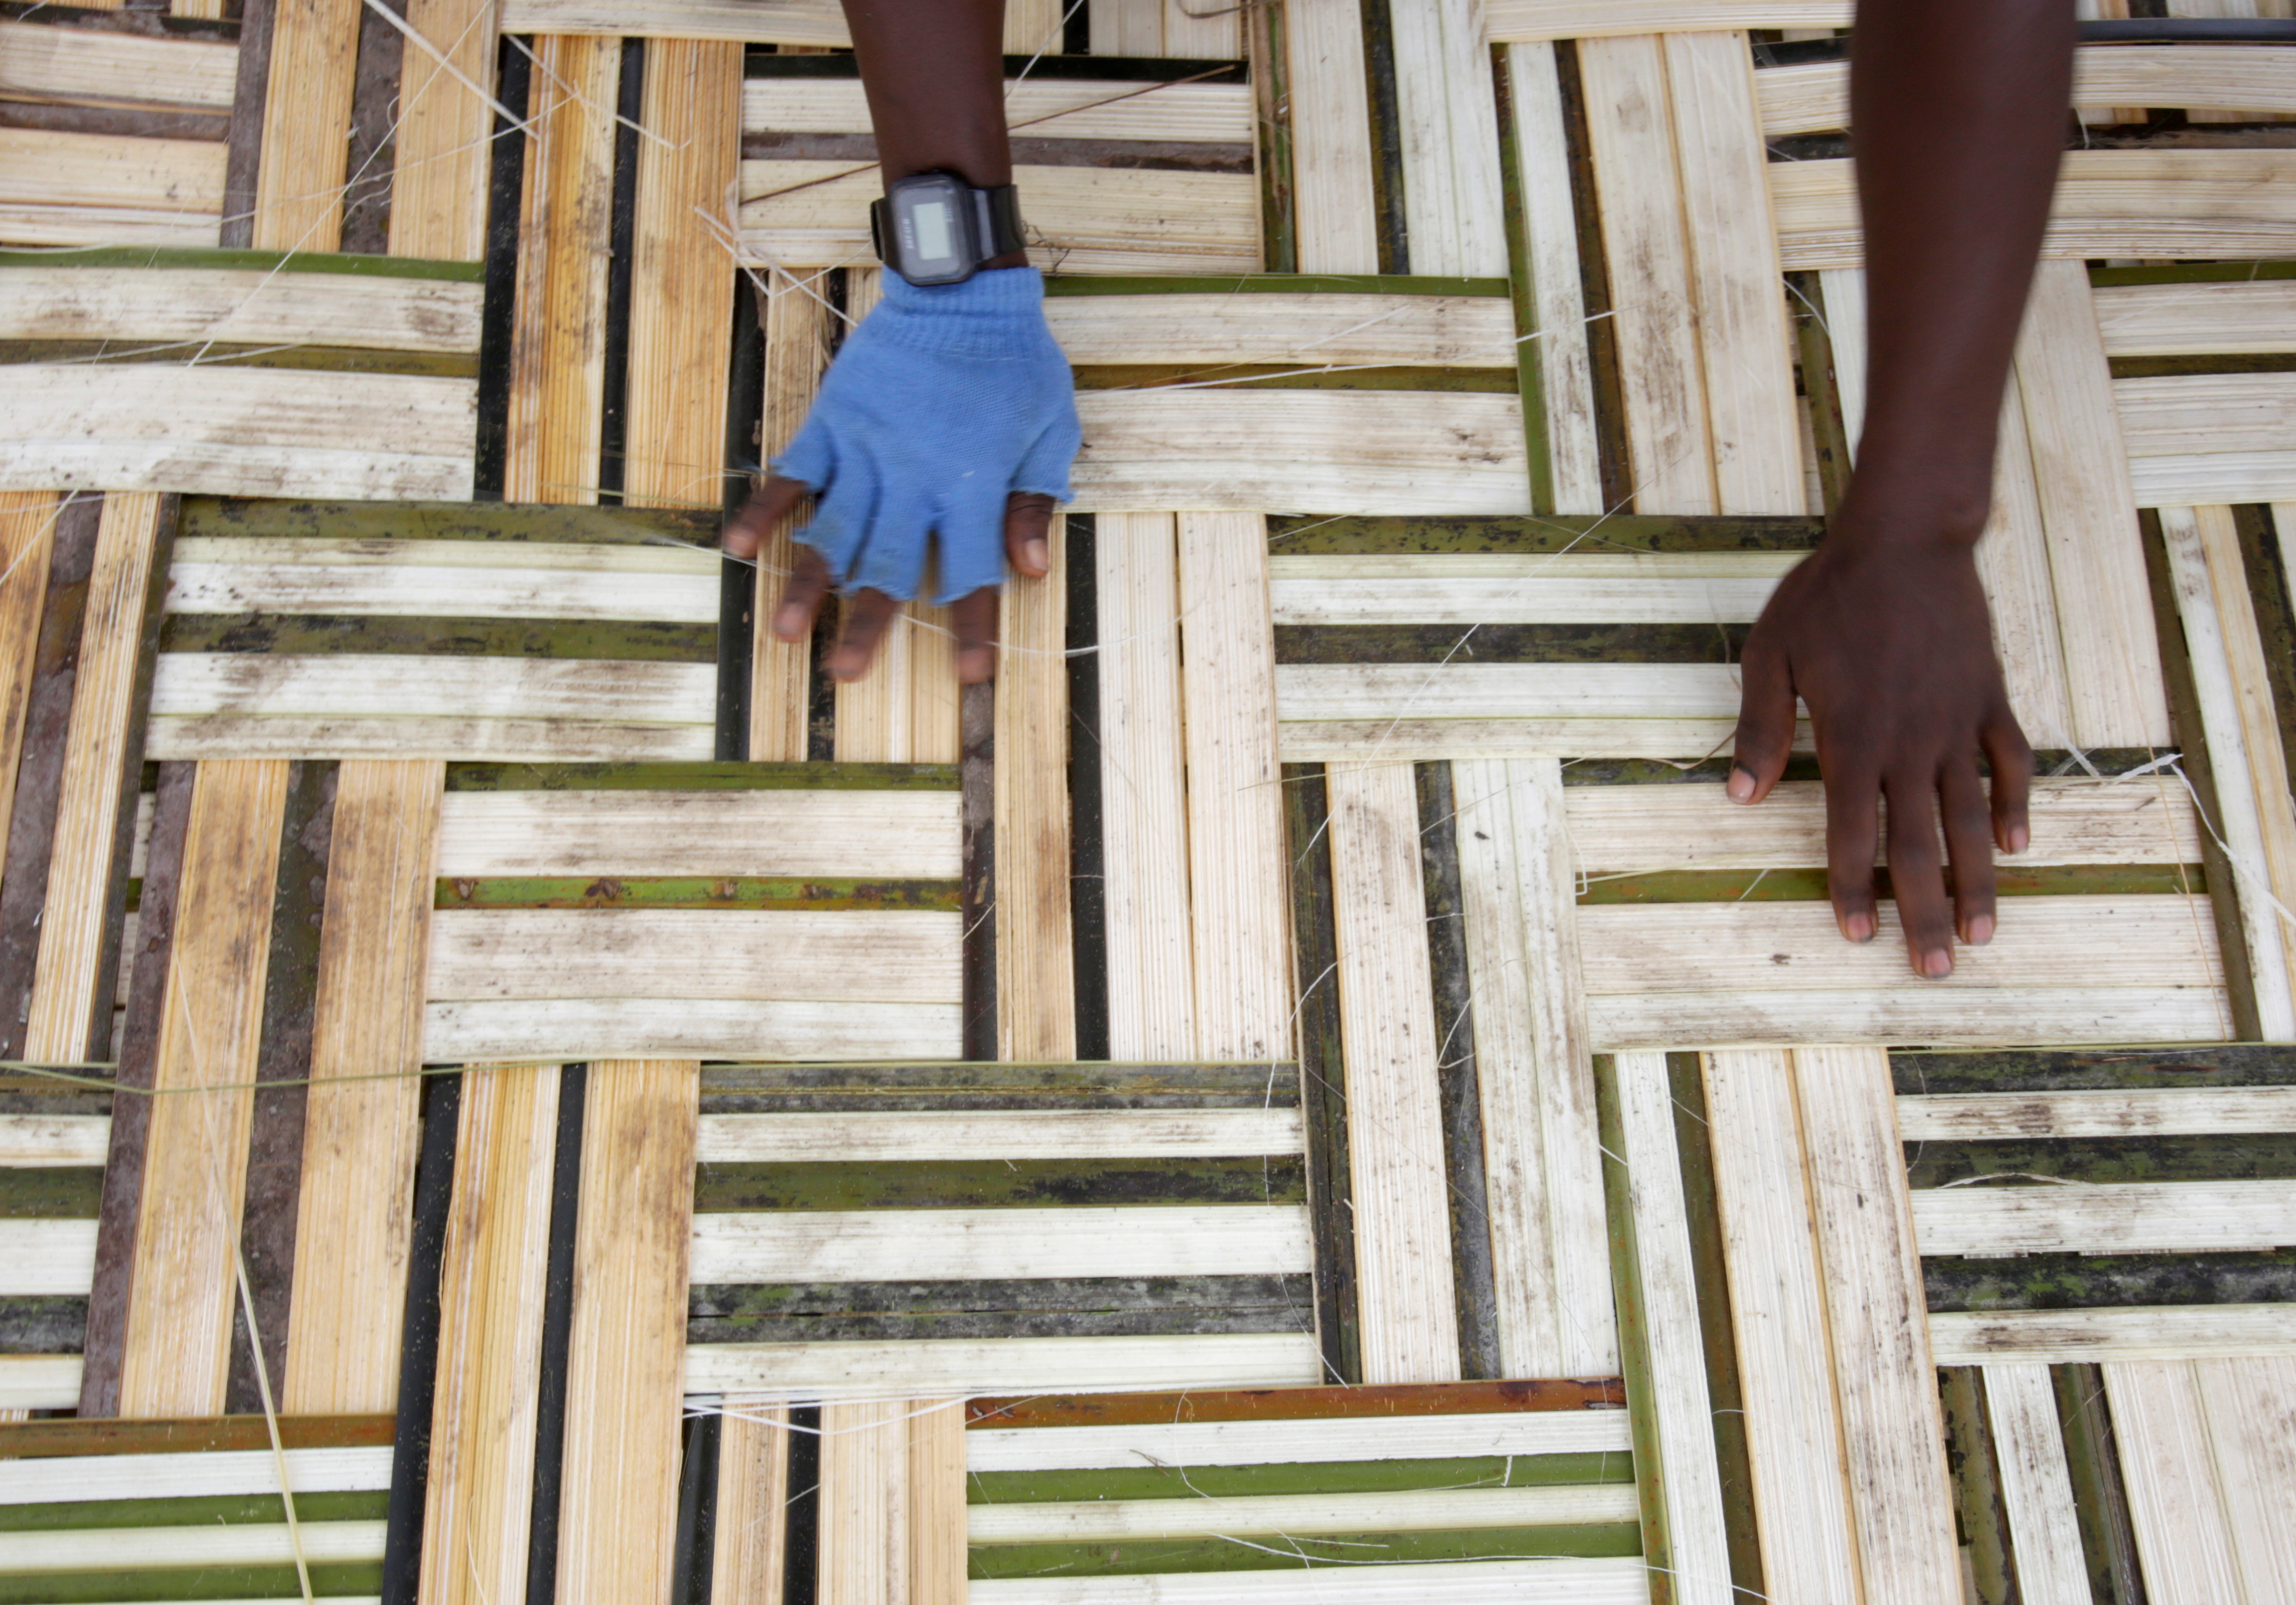 A man works on bamboo mat in Monrovia, Liberia, October 14, 2017. REUTERS/Thierry Gouegnon